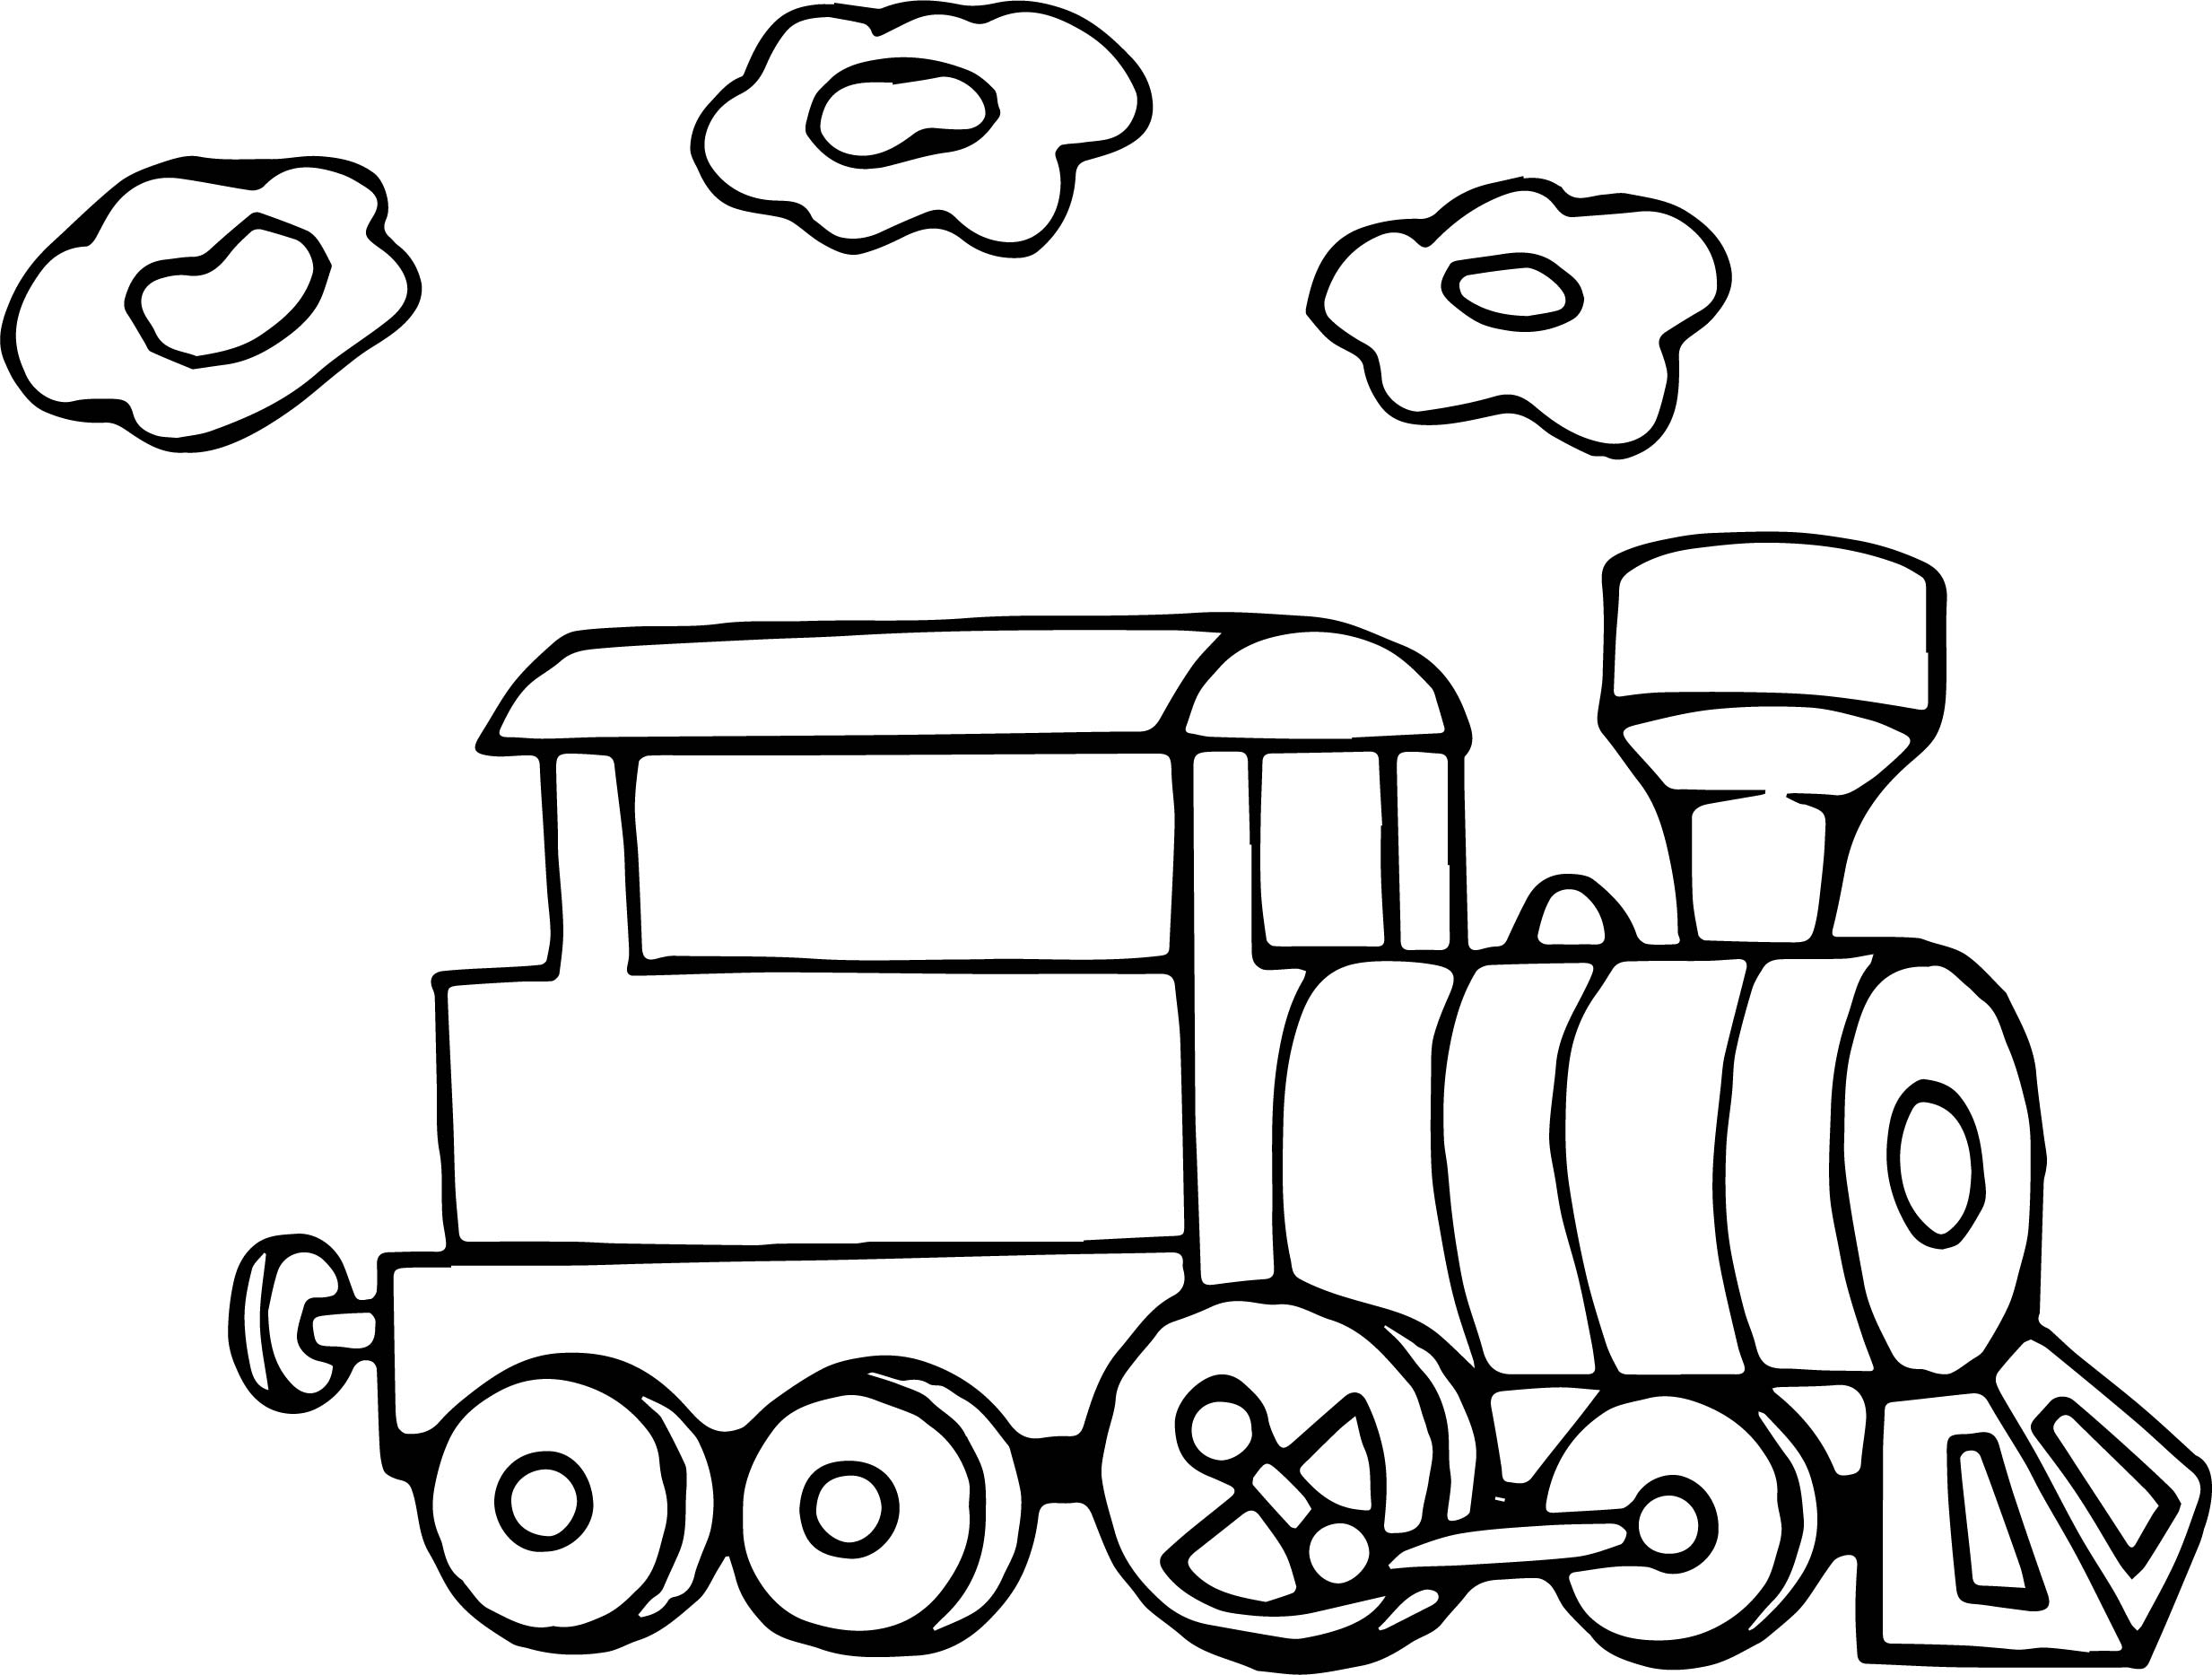 going train coloring page wecoloringpage